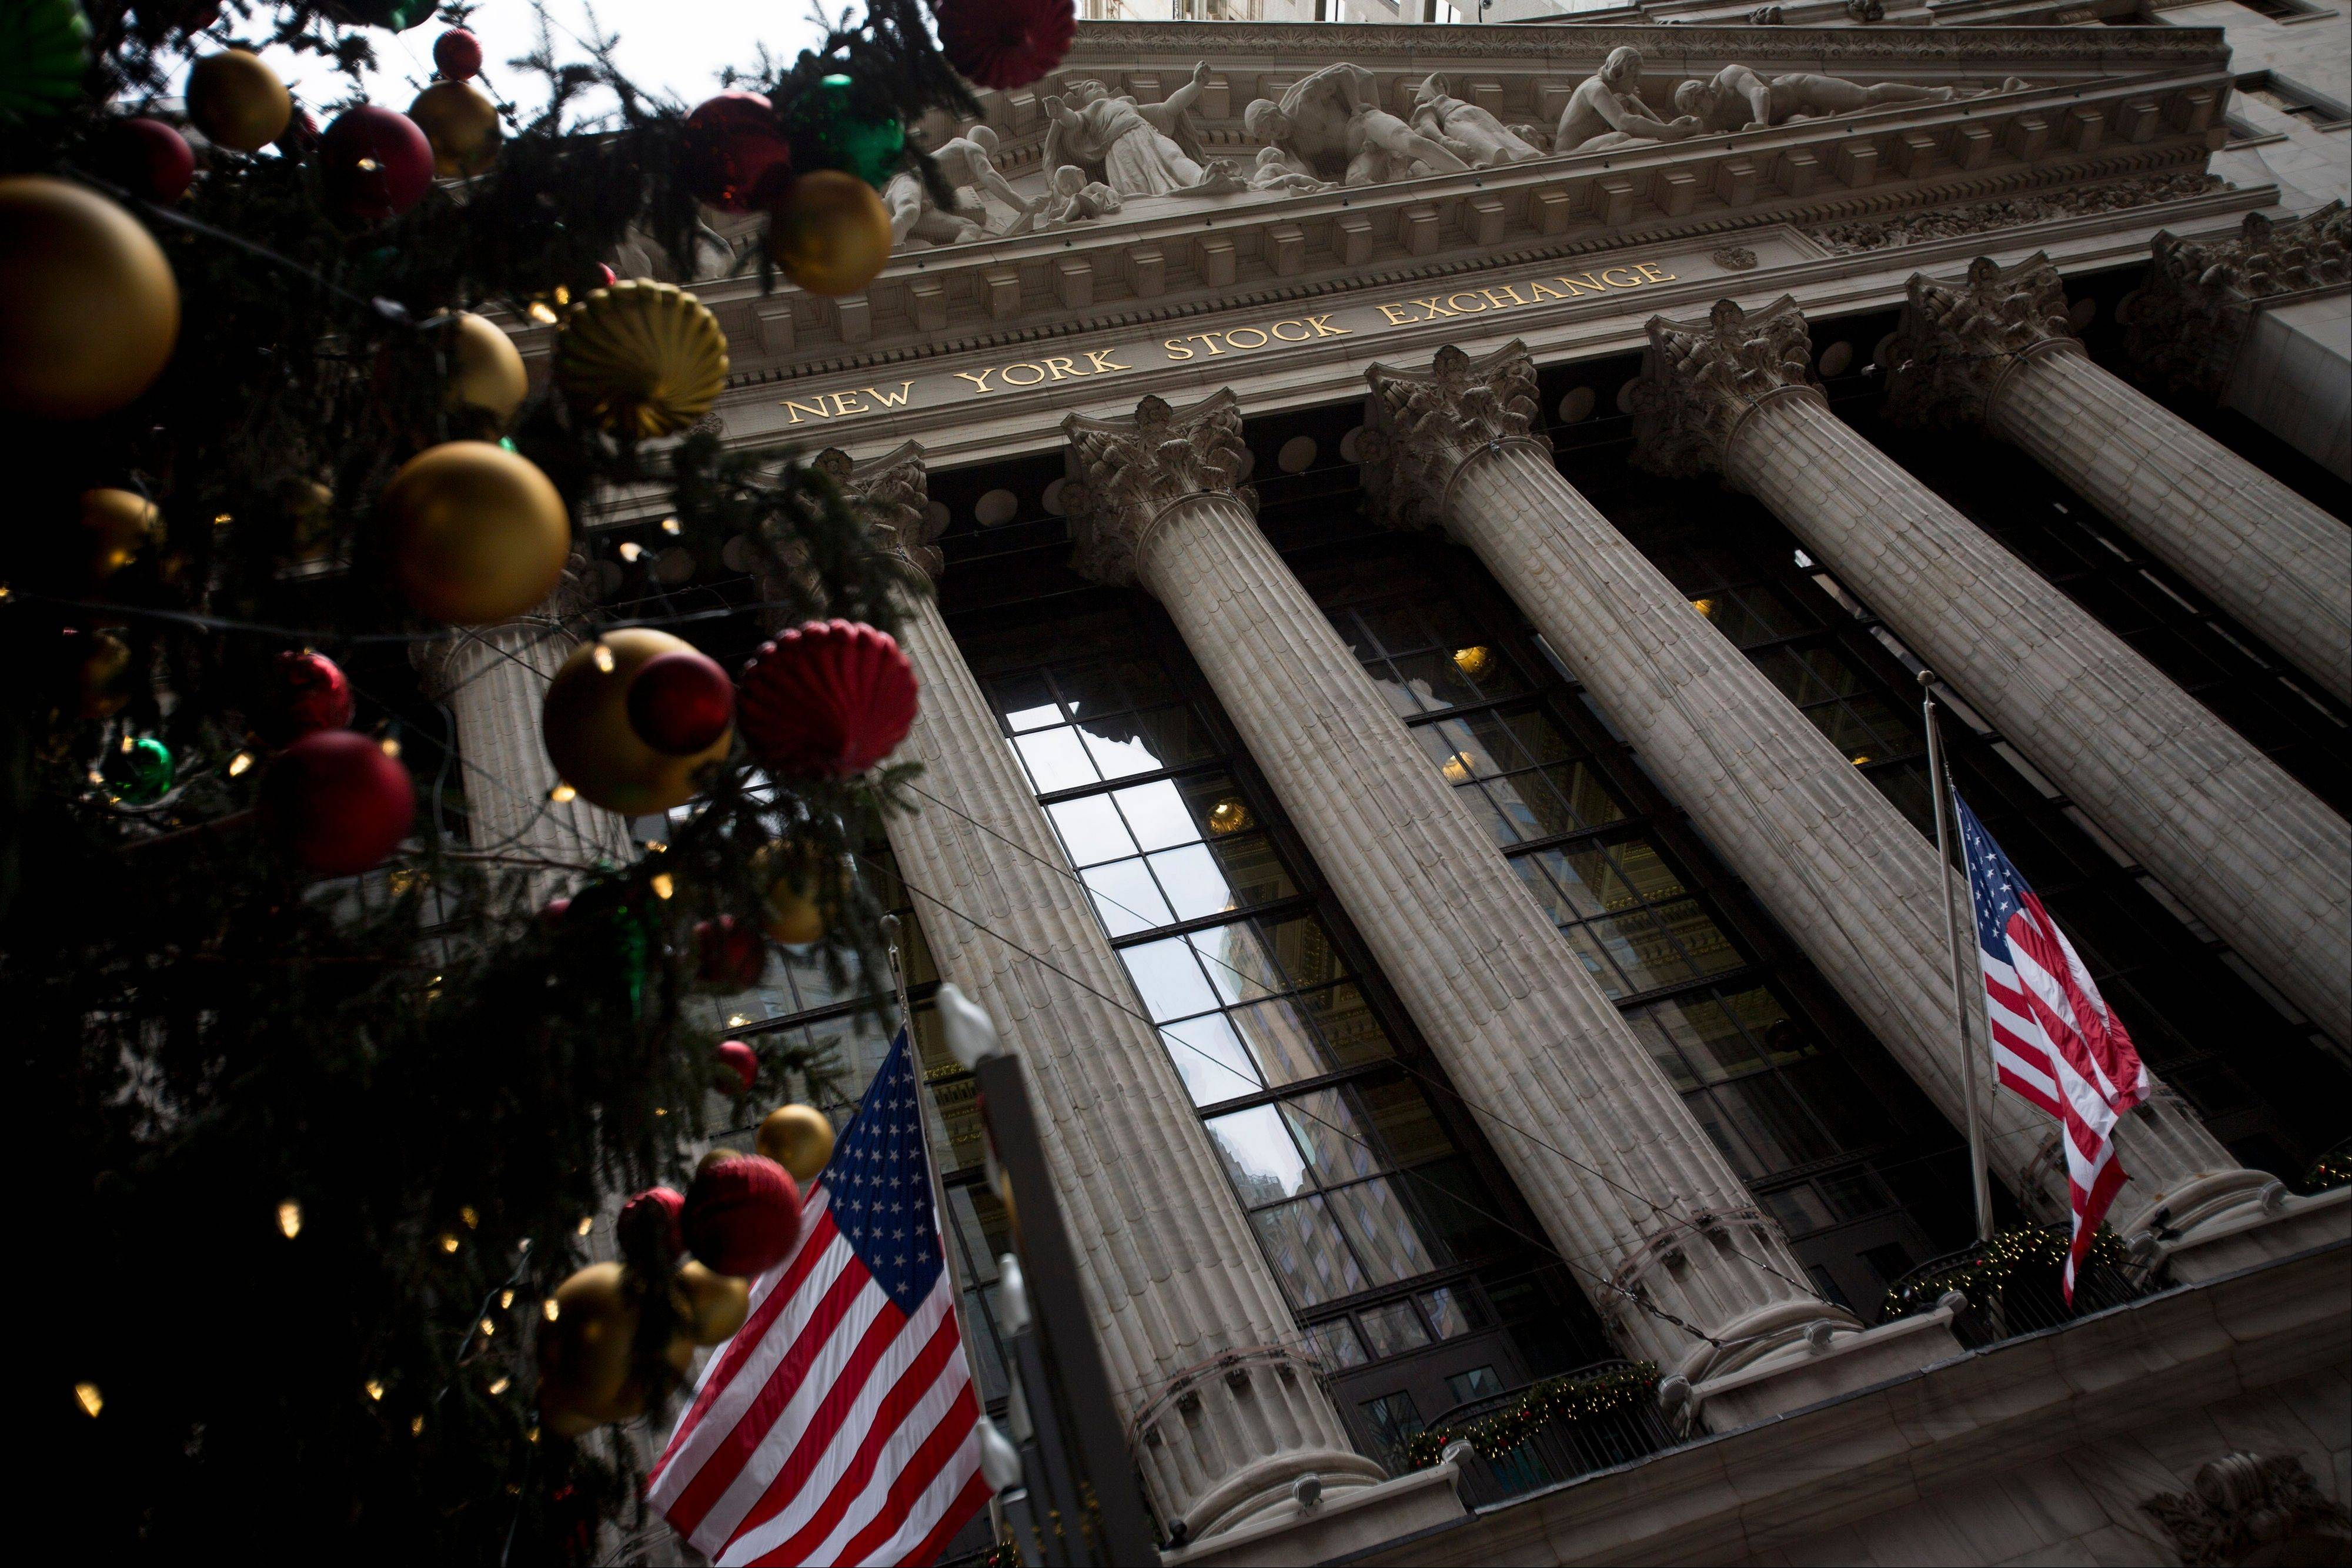 Christmas decorations and U.S. flags are displayed outside of the New York Stock Exchange in New York, Wednesday.